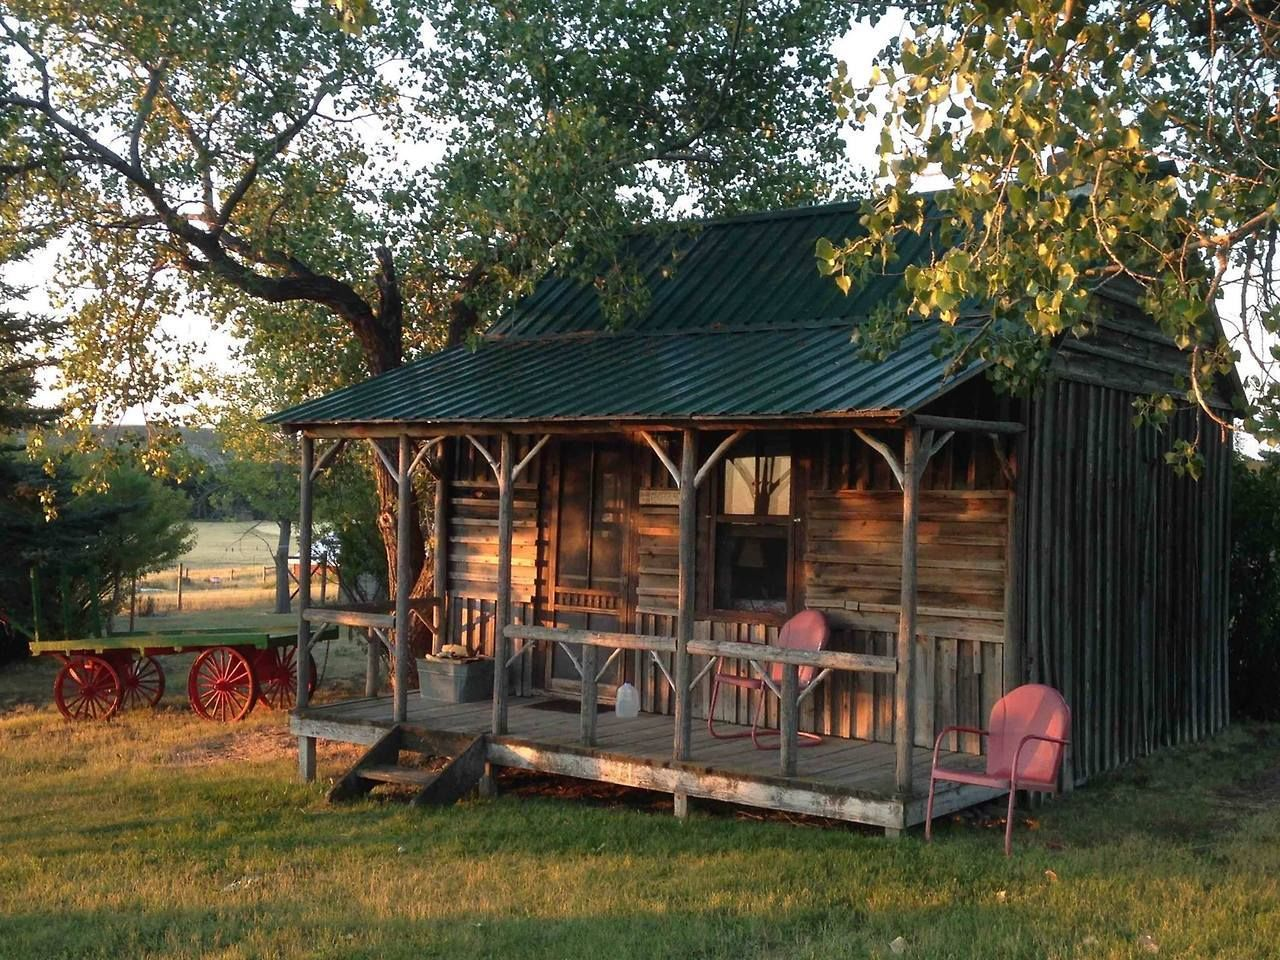 Pin By Valeria On Small Homes Backyard Cabin Log Cabin Rustic Small Log Cabin